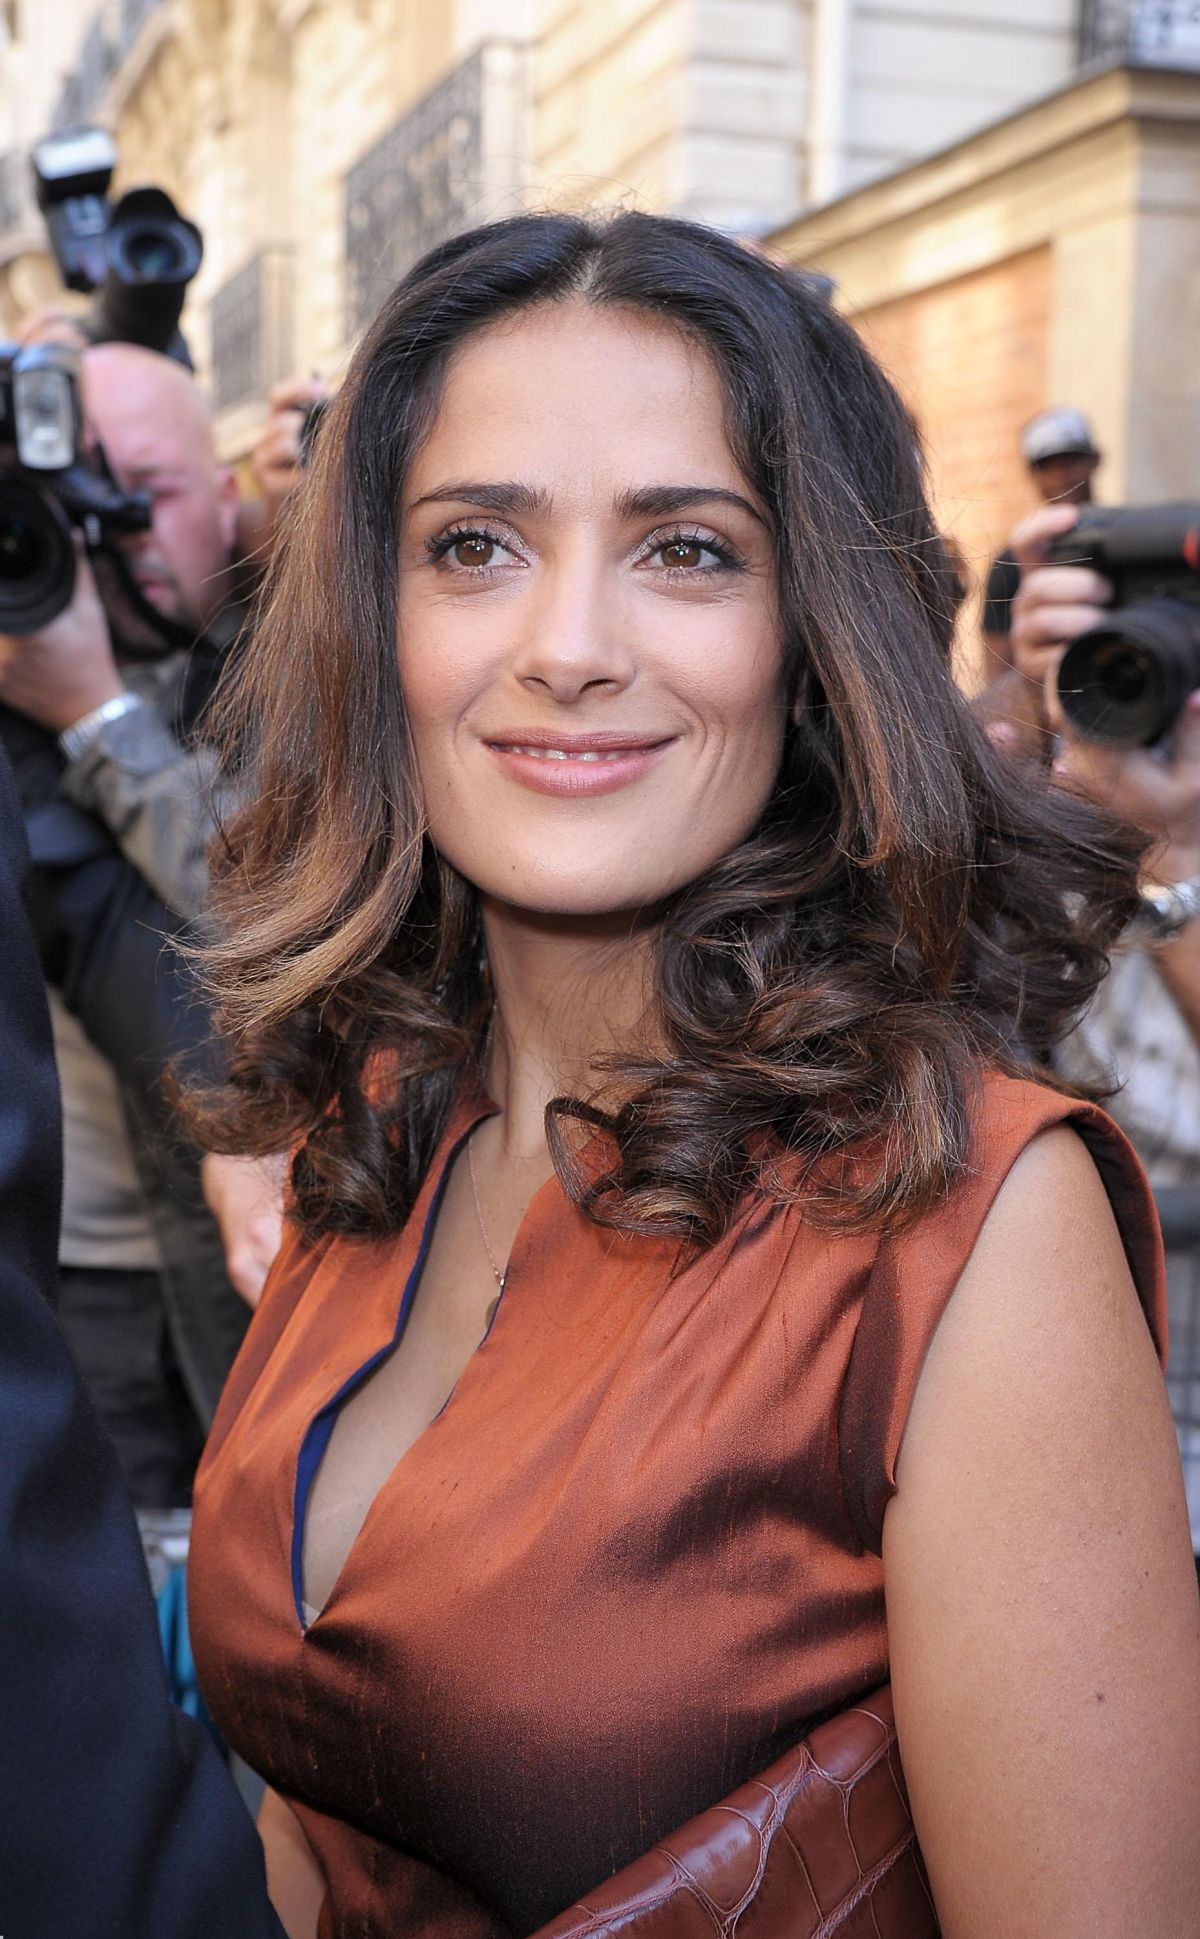 Salma Hayek Arrives For Balenciaga 2012 Fashion Show - Celebzz Salma Hayek